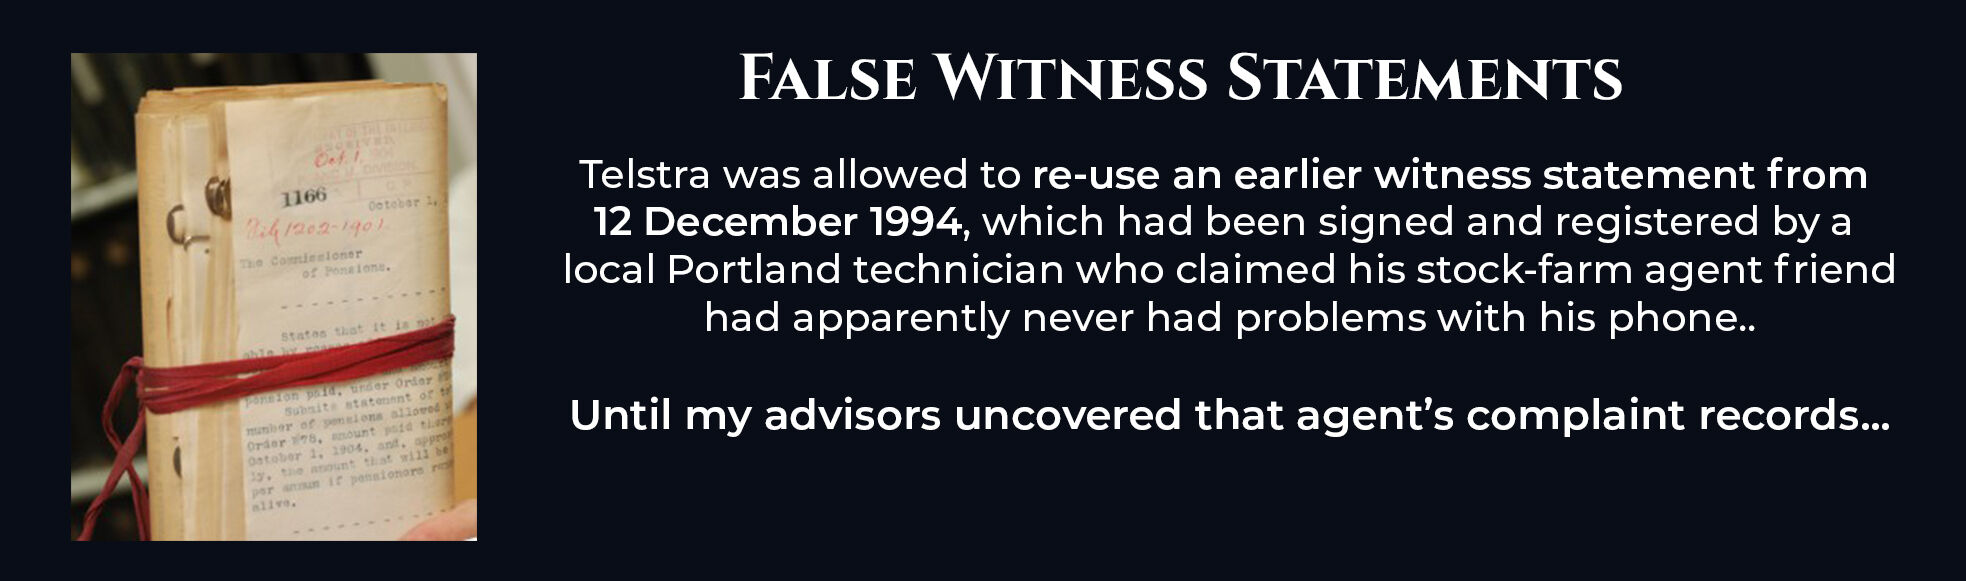 Absent Justice - False Witness Statements